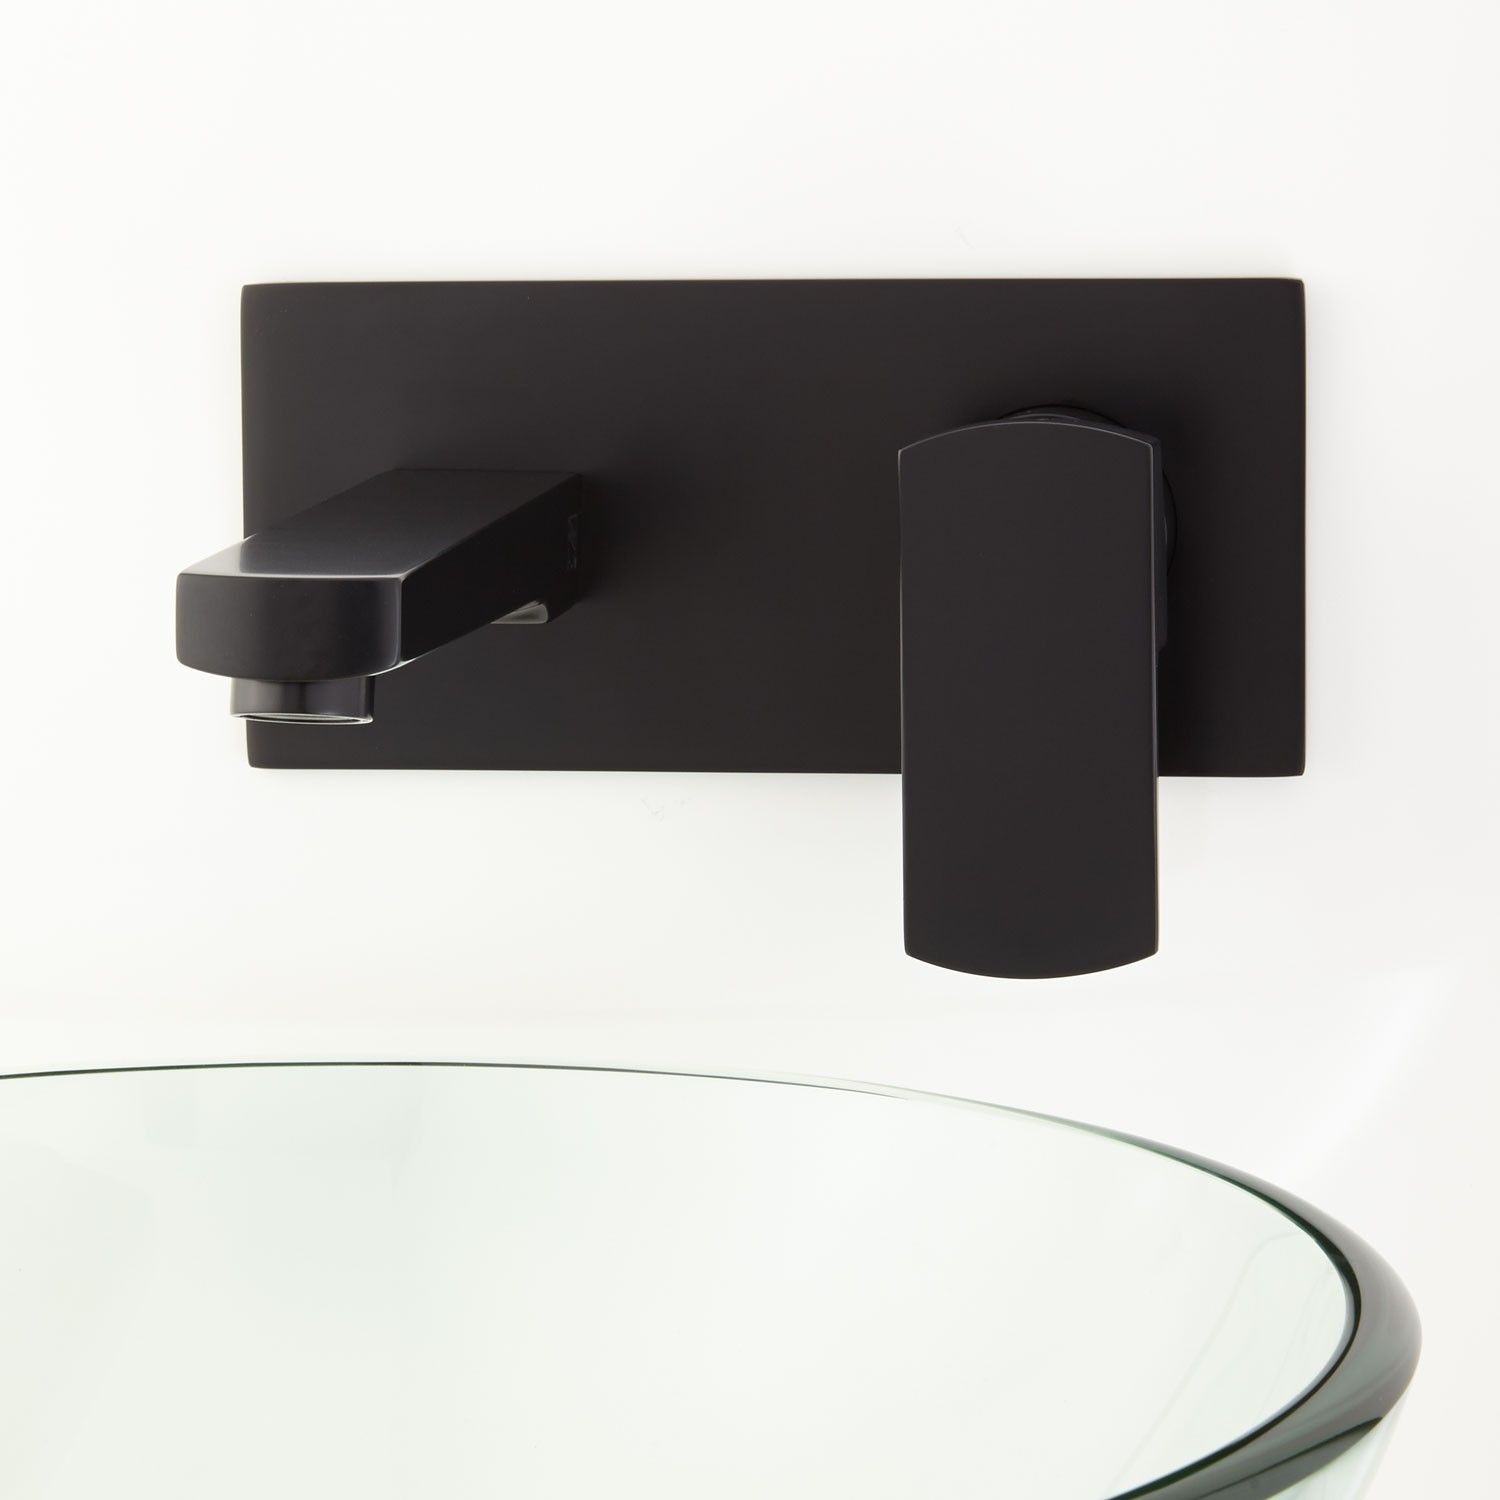 Altus Wall-Mount Bathroom Faucet with Square Base and Pop-Up Drain